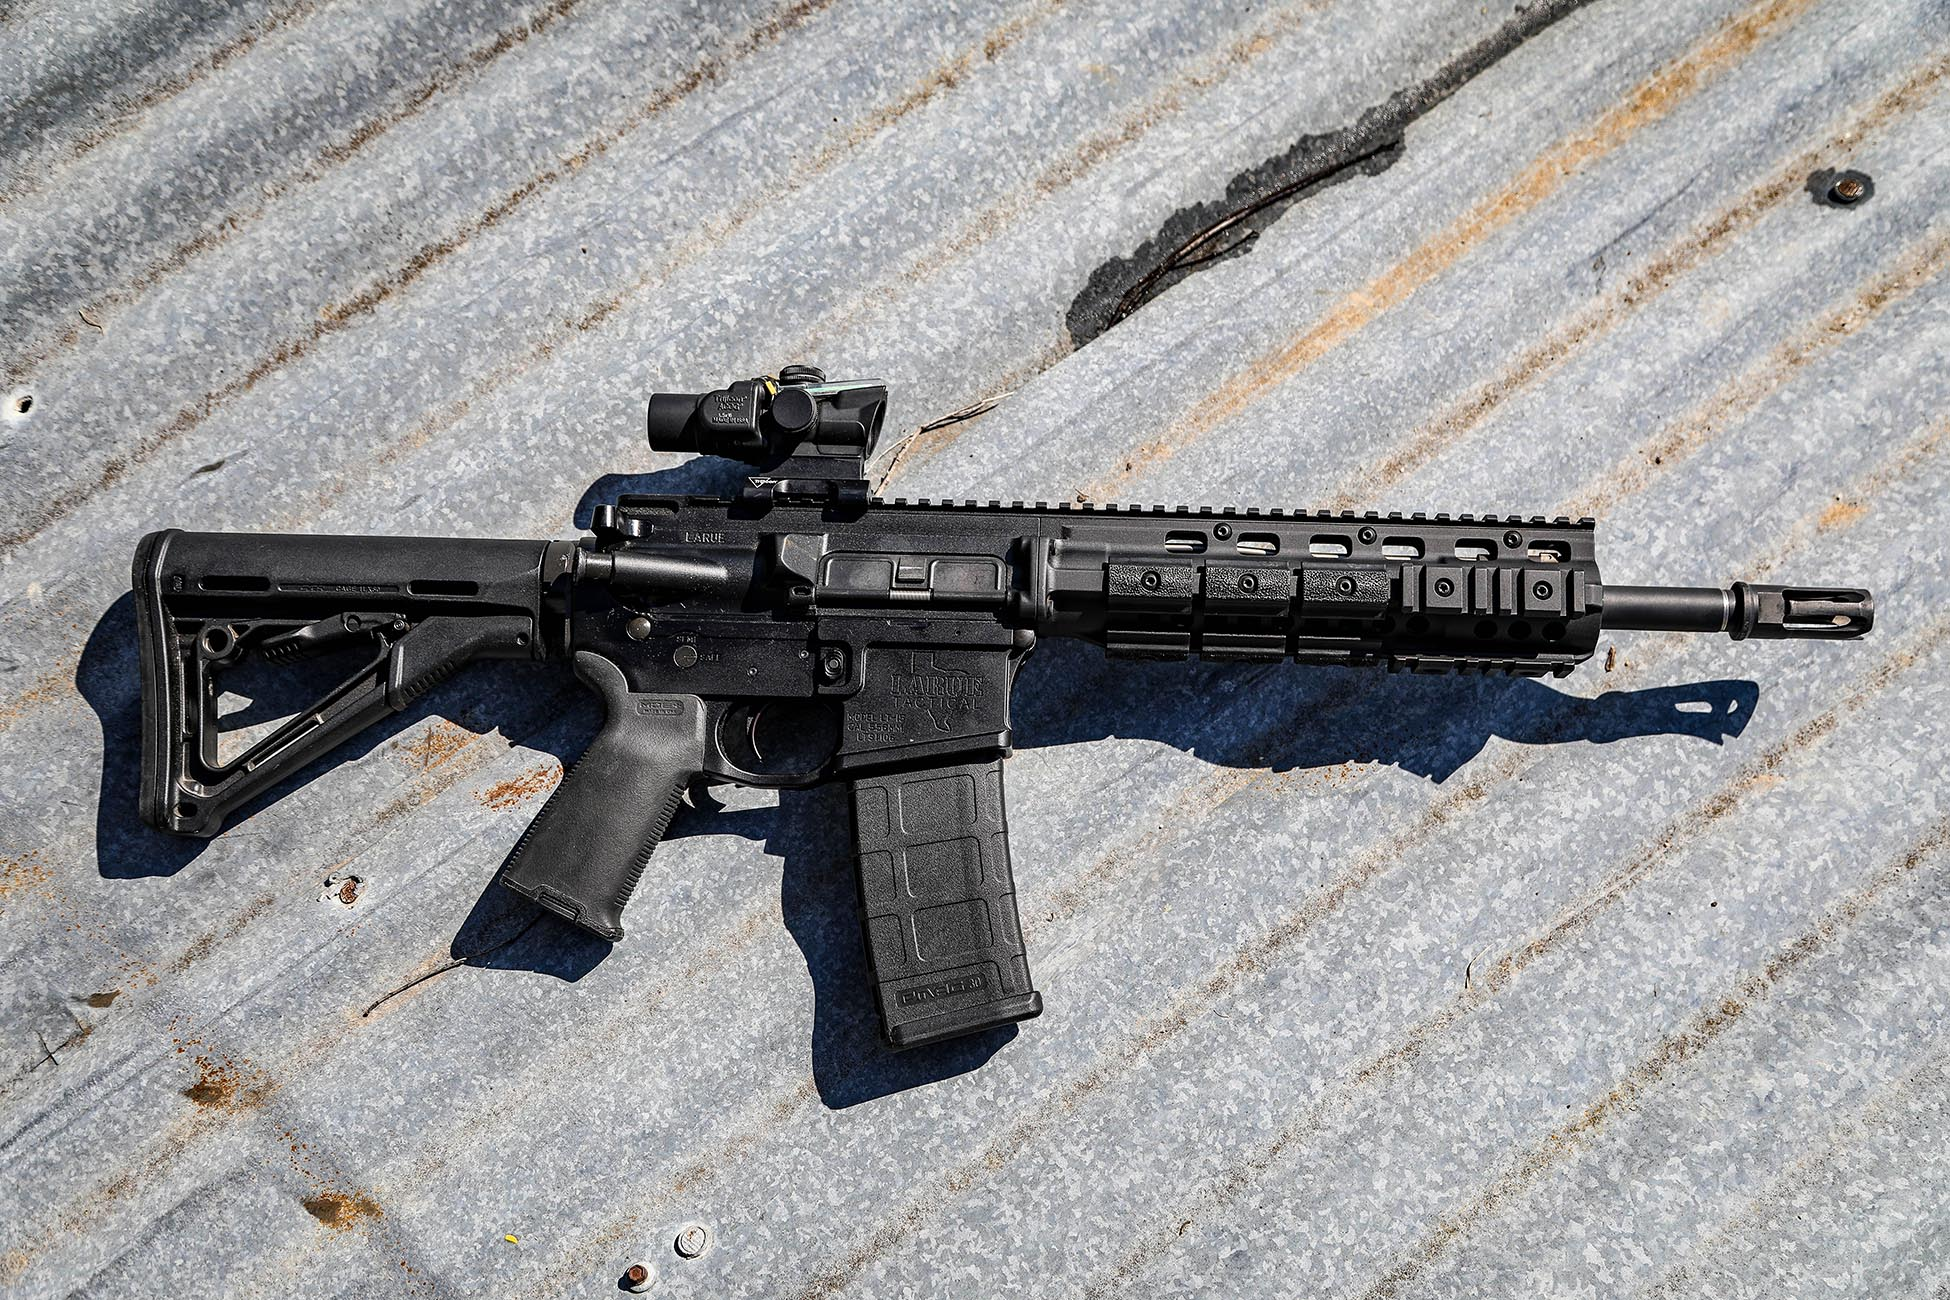 AR15 Collapsible Stock installed on a piston driven AR Carbine